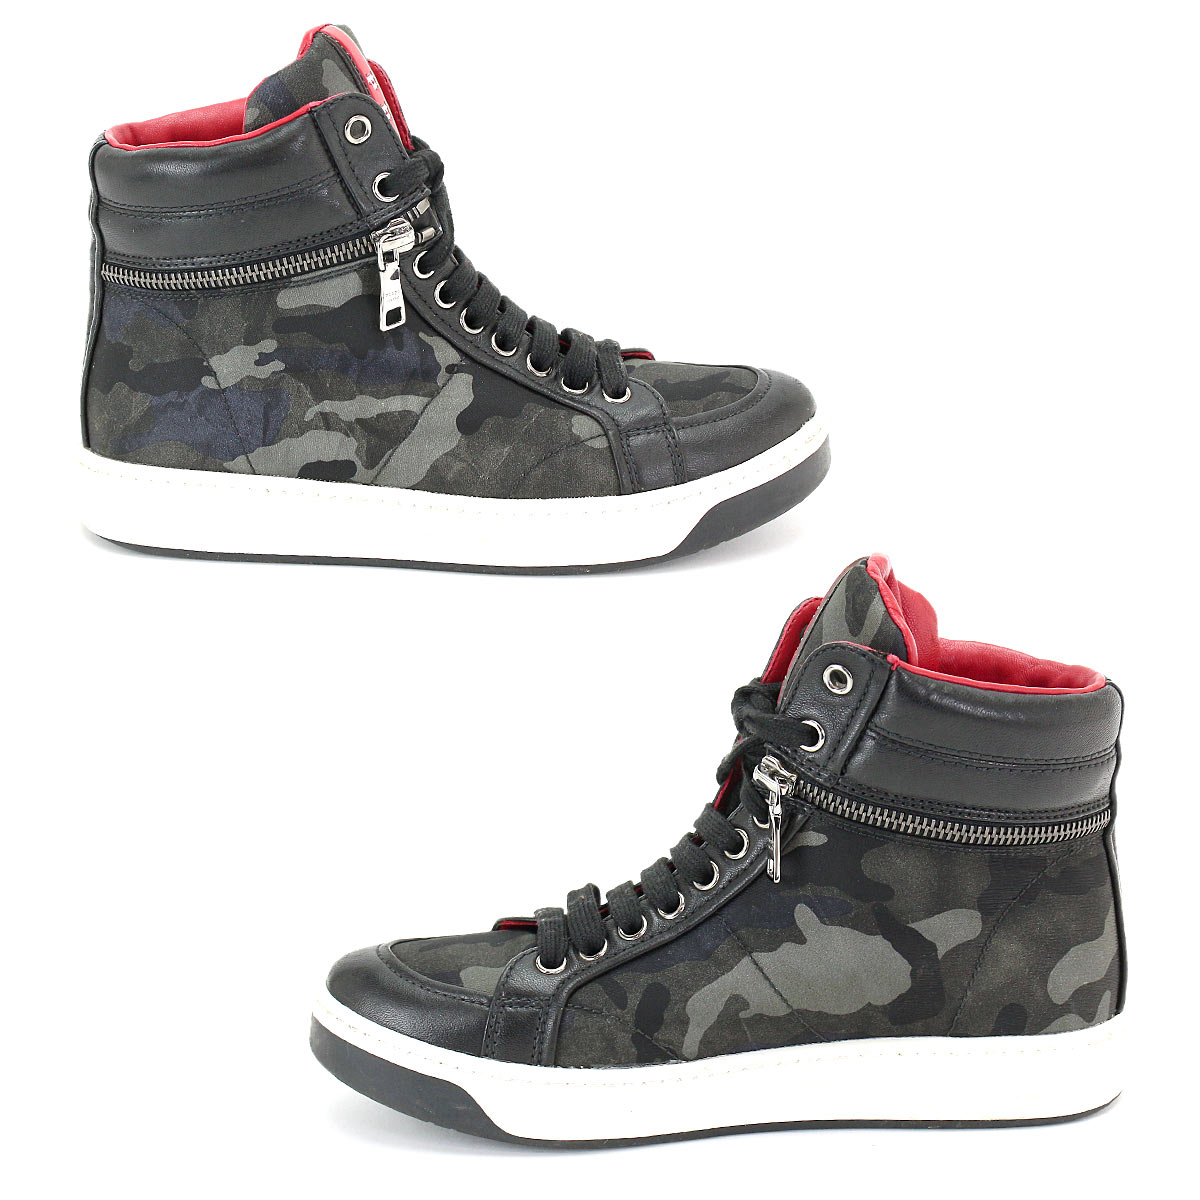 80d0ed9014252 ... Prada sports PRADA SPORT camouflage higher frequency elimination  sneakers nylon leather black gray 3T5871 35 22.0 ...